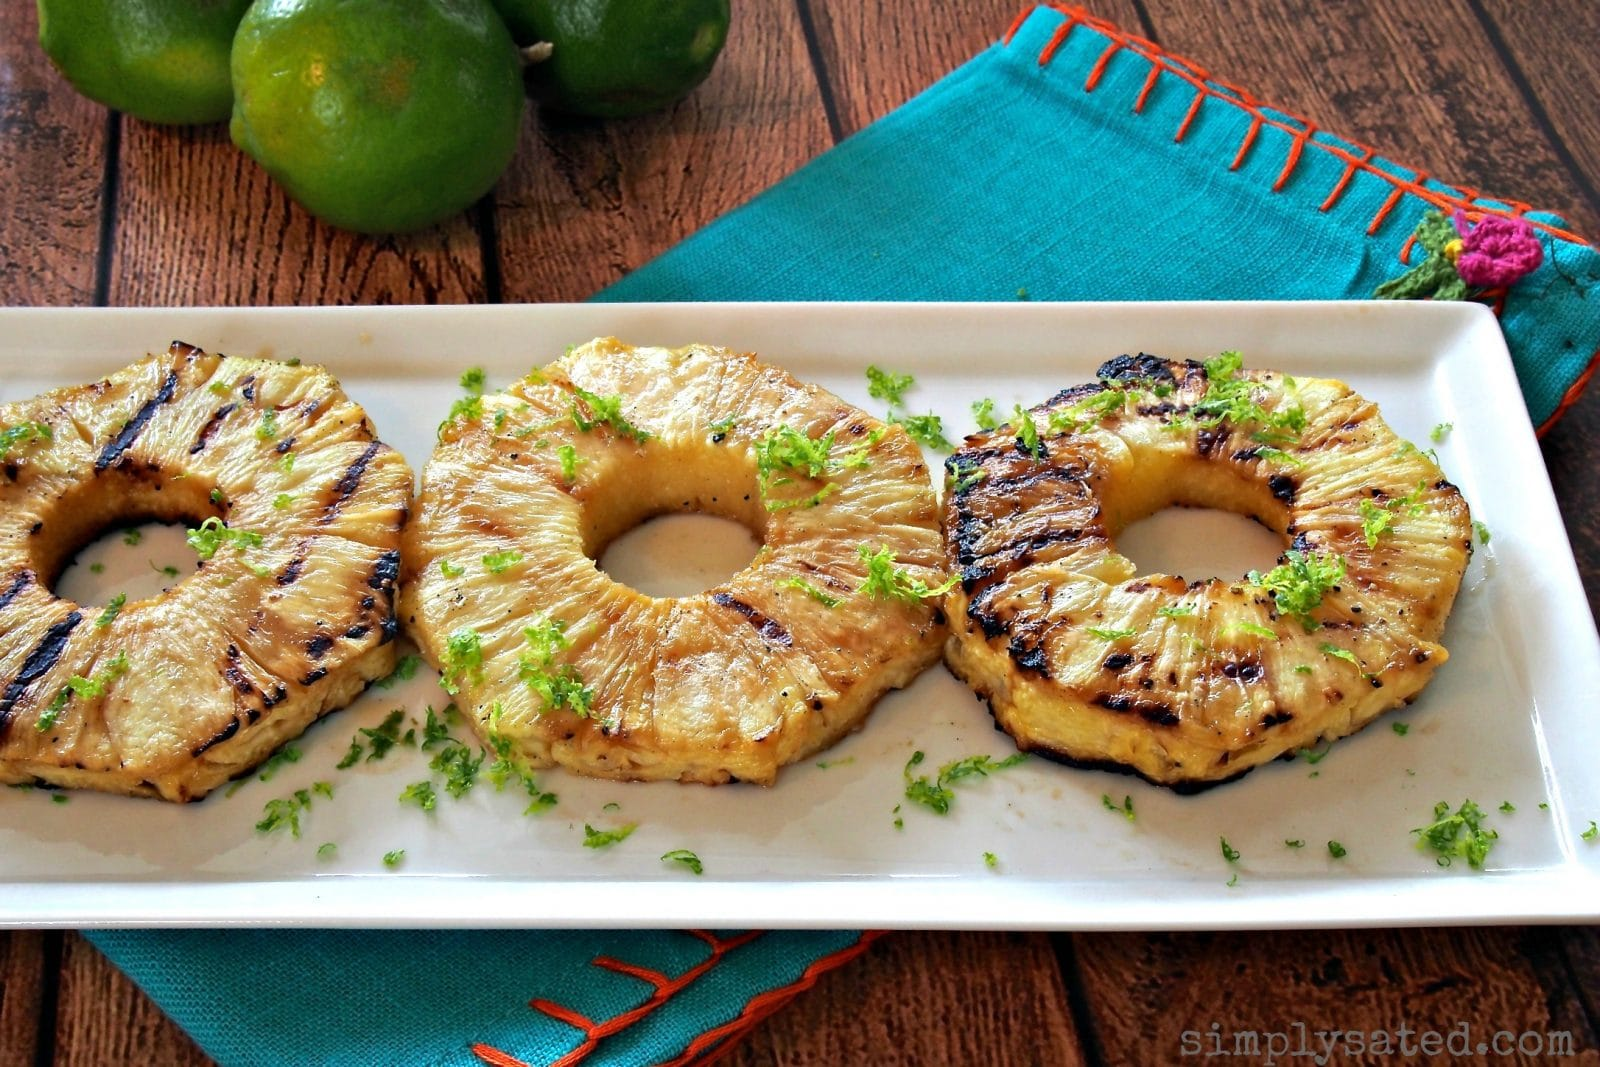 Grilled Pineapple with Lime Zest is a terrific side dish or dessert. Simple, beautiful and delicious. A great combo. www.simplysated.com